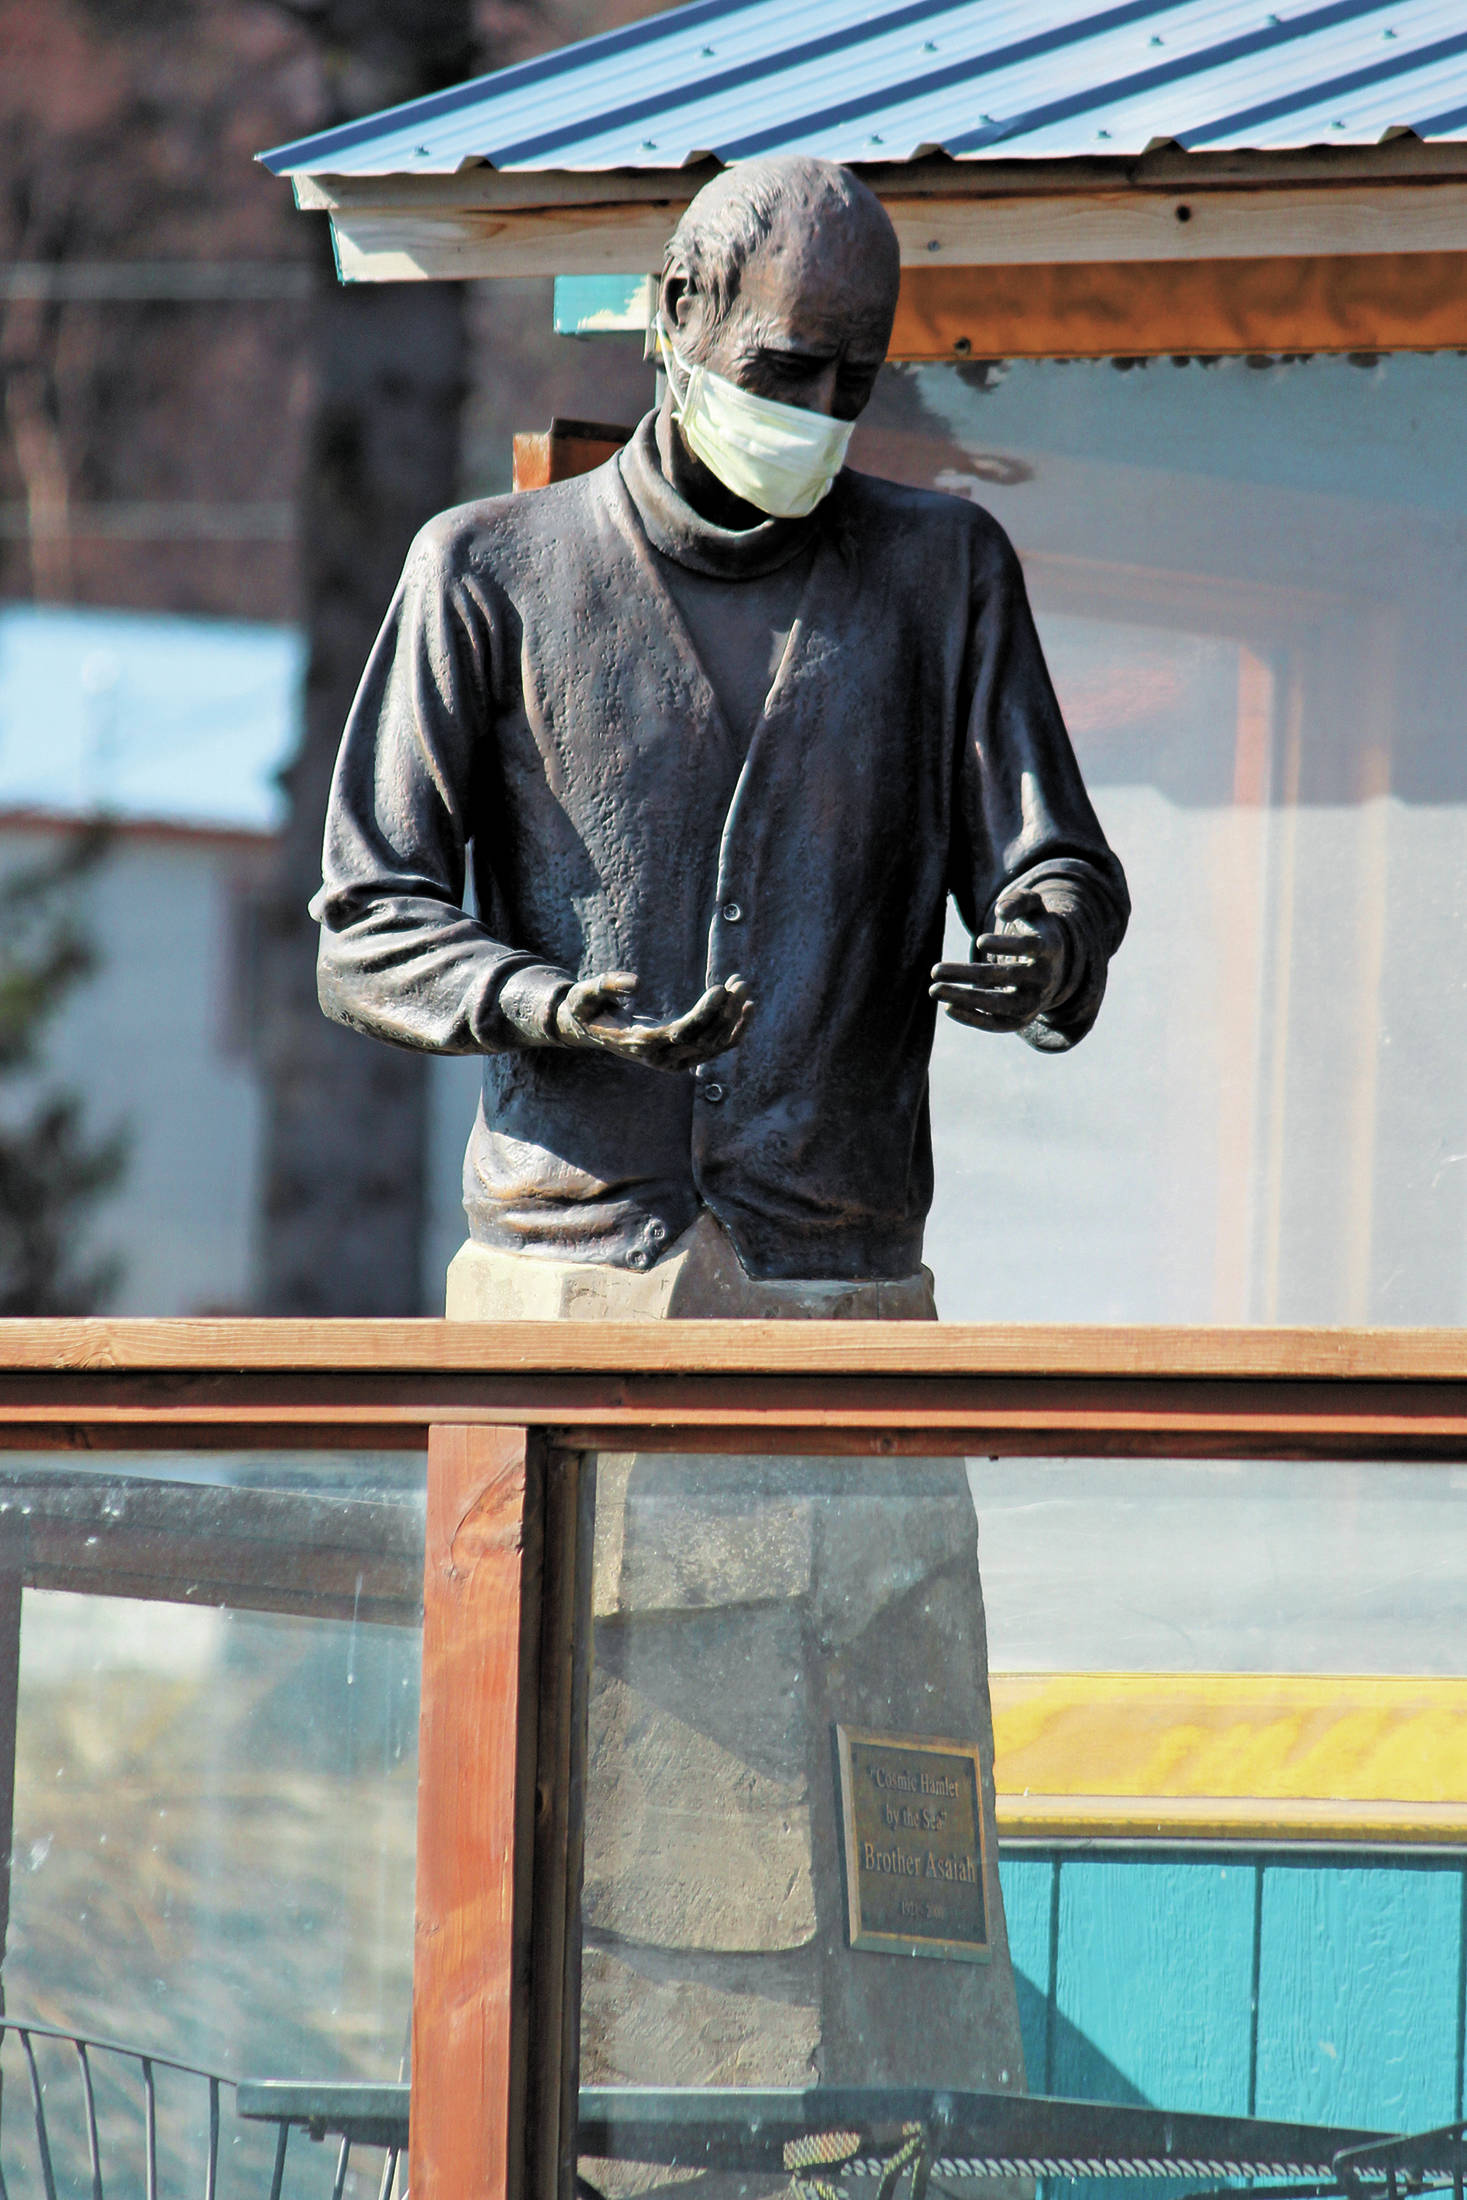 The statue of Brother Asaiah Bates that stands at Cosmic Kitchen is seen wearing a mask on Monday, April 6, 2020 in Homer, Alaska. The state of Alaska is currently advising people to wear protective cloth coverings when they have to go out in public for essentials. (Photo by Megan Pacer/Homer News)